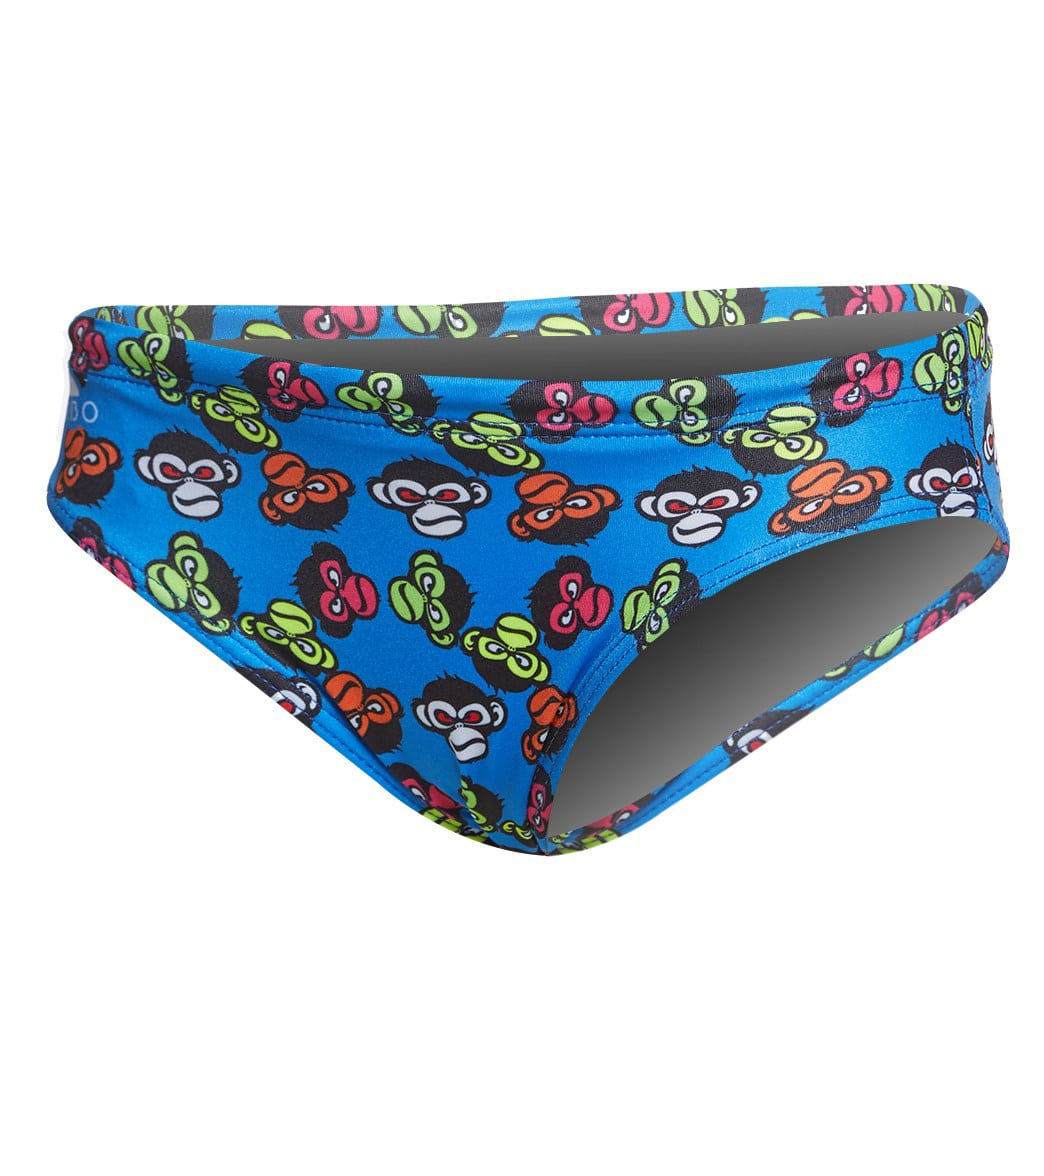 078d20cacd195 Turbo Boys' Monkey Swim Brief at SwimOutlet.com - Free Shipping